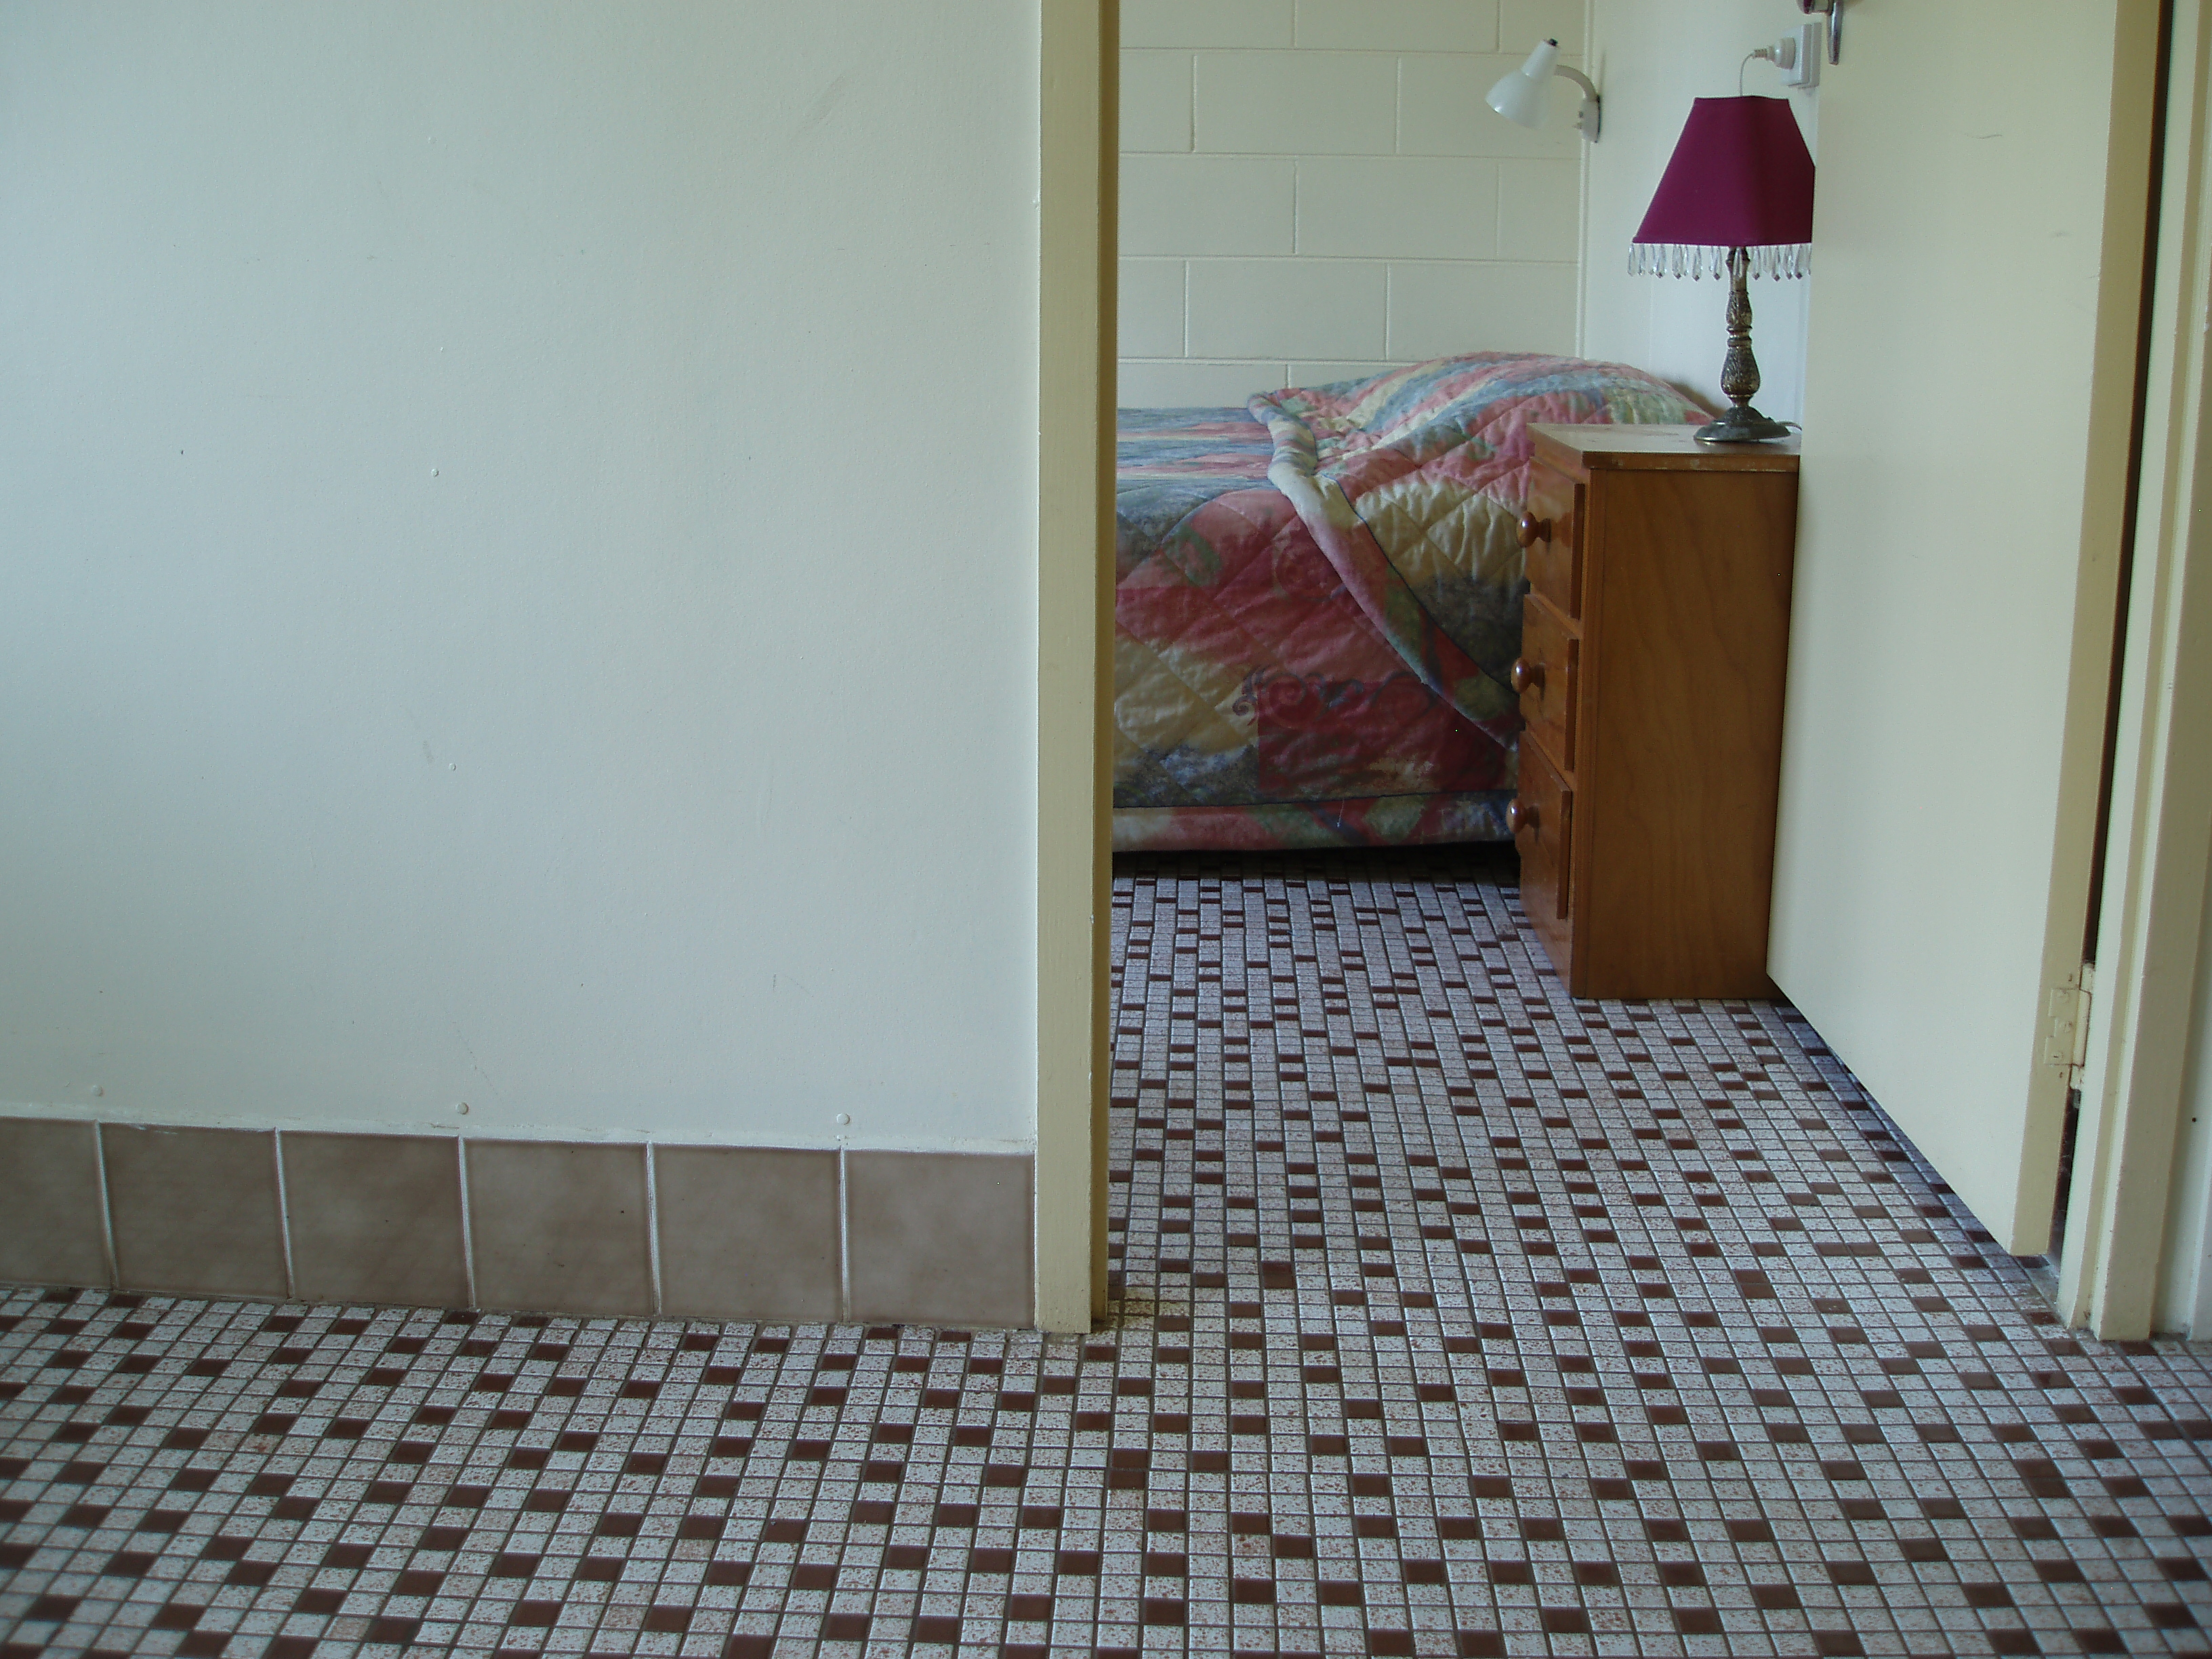 mosaic floor in interior of a motel